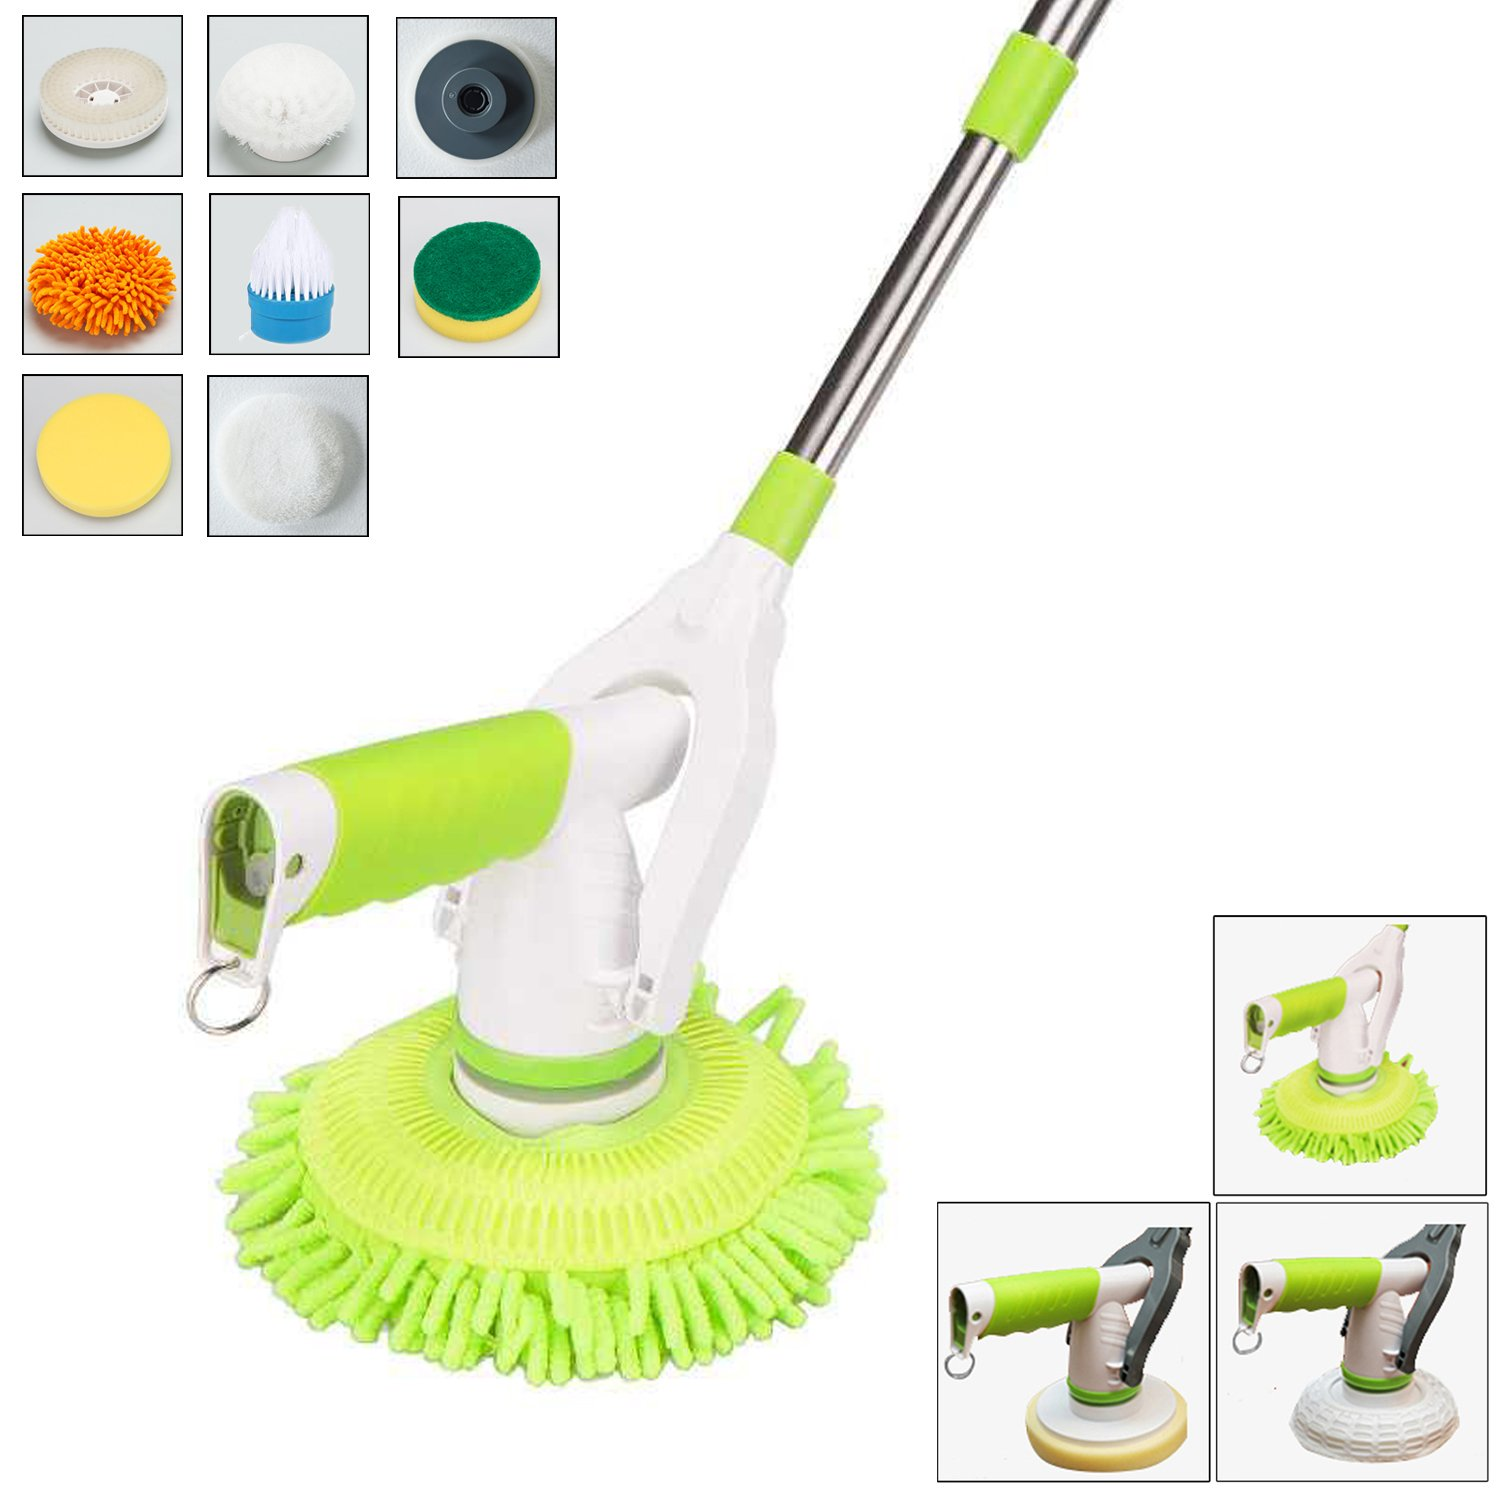 Avesfer Floor Scrubber Electric Spin Scrubber Cordles Floor Cleaner Household Rolling Spin Mop Cleaning Brush Mop Floor Polish Waxing with Extension Handle 8 Replaceable Heads for Bathroom Kitchen (1)